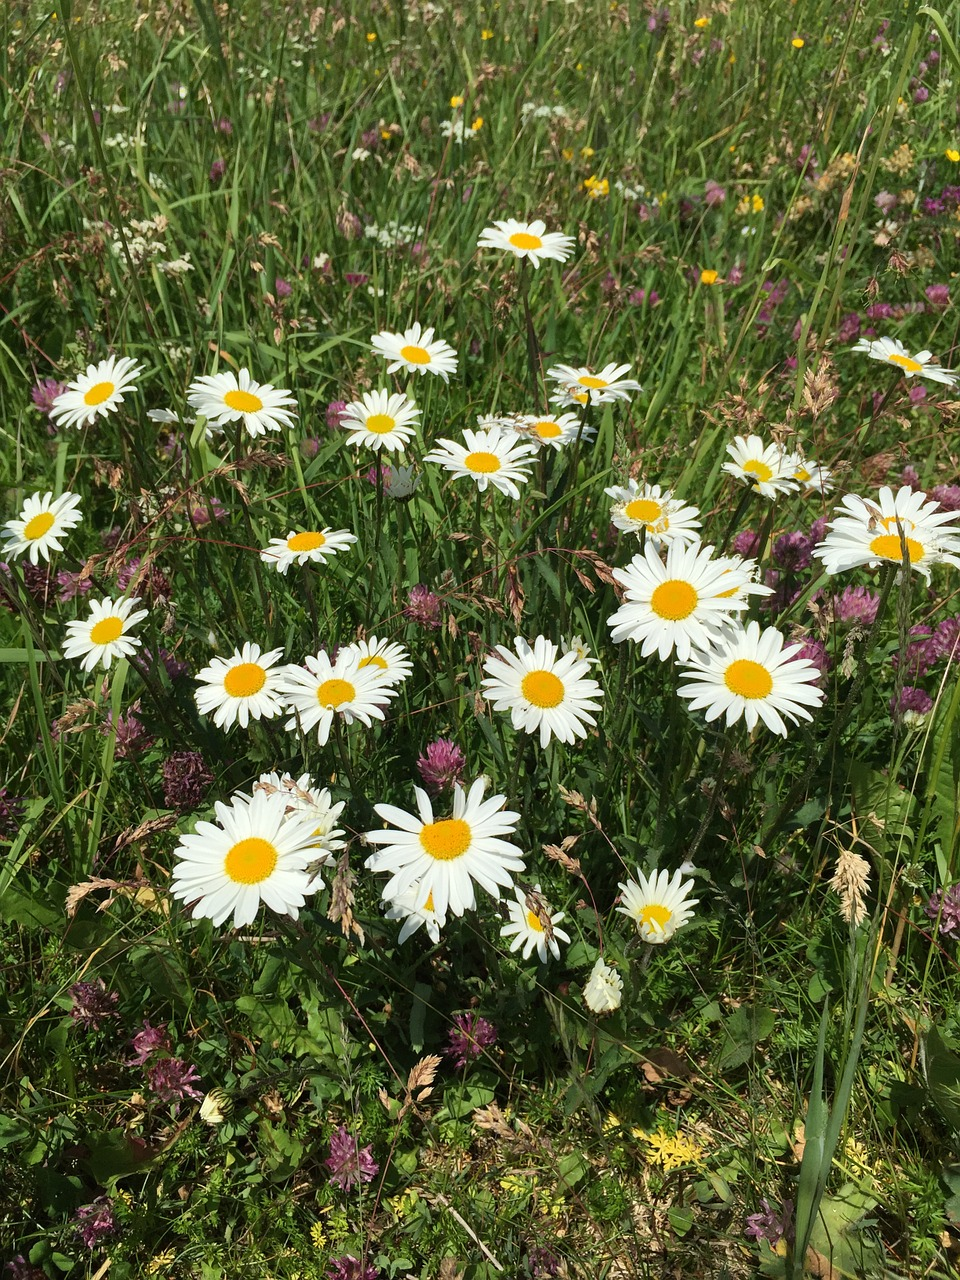 Daisiesflowerswhiteyellowwild Flowers Free Photo From Needpix